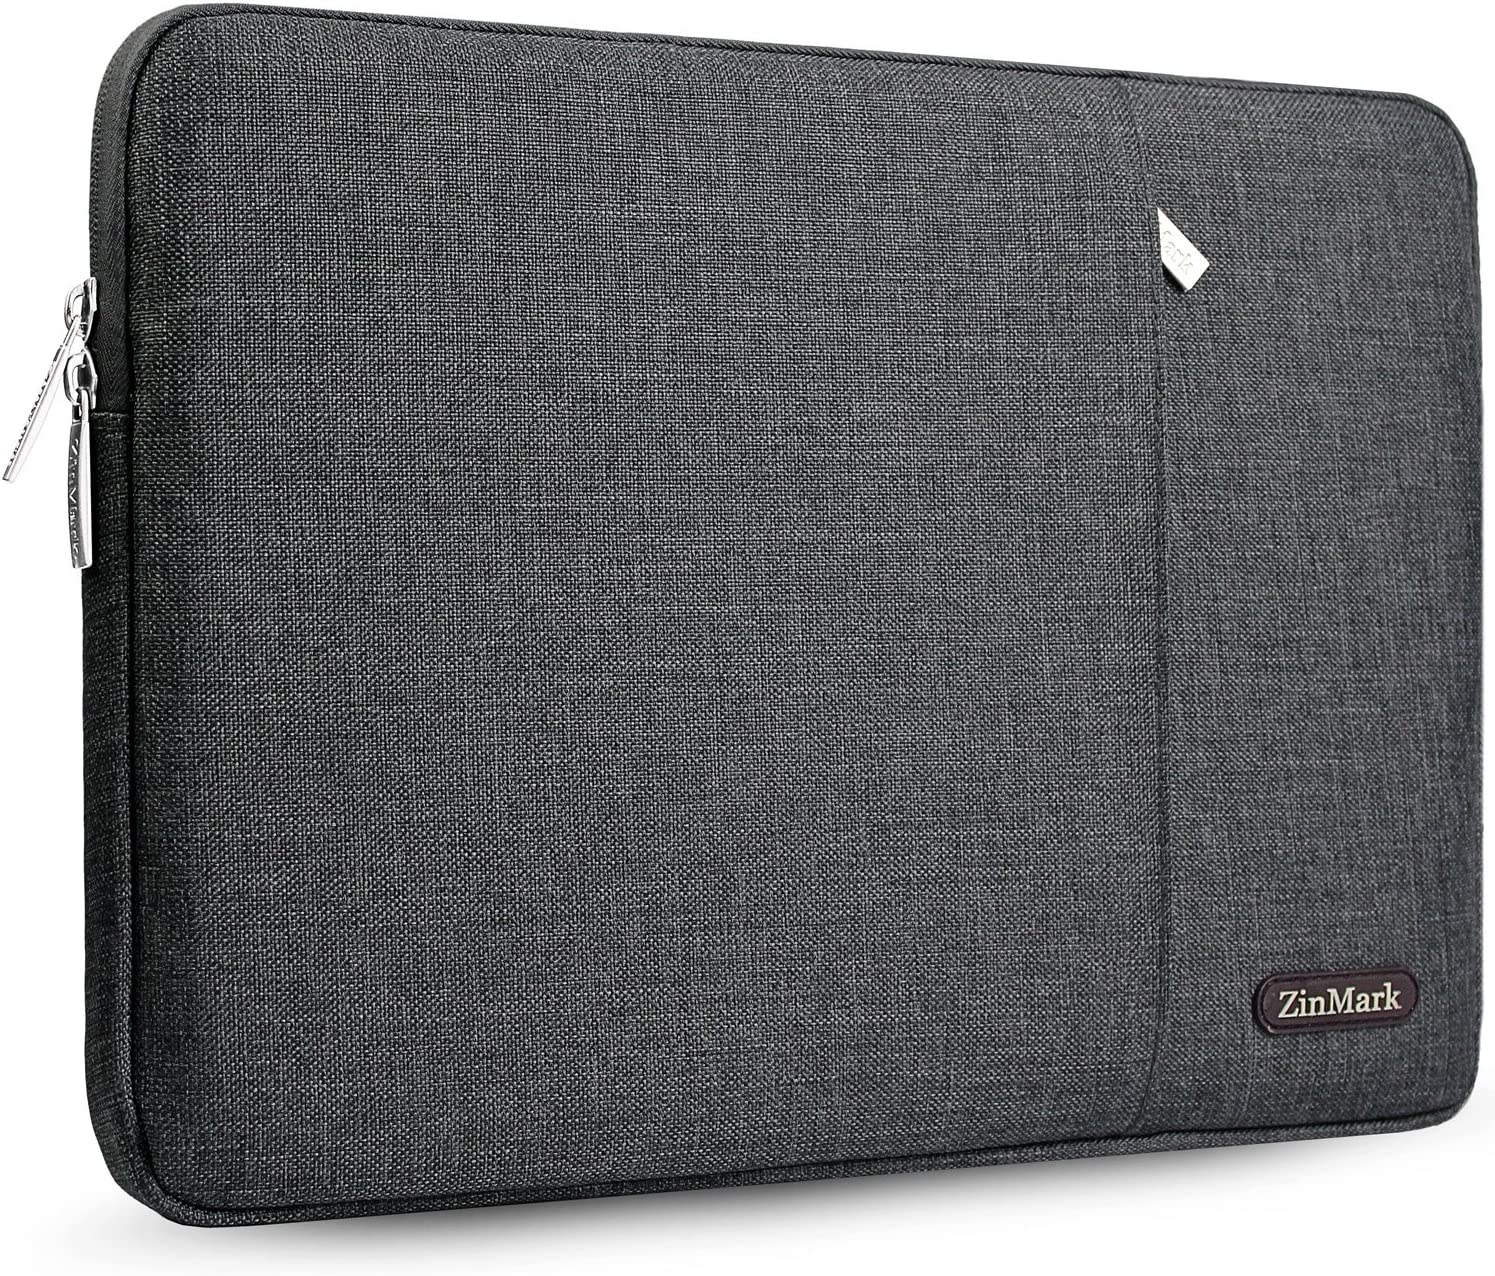 ZinMark Laptop Case Sleeve 15.6-Inch, Spill-Resistant Protective Case for 15.4-Inch MacBook Pro A1286 / Retina A1398 and Most 15.6-Inch Laptop Ultrabook Netbook, (15.67 x 11.02 in) Dark Gray